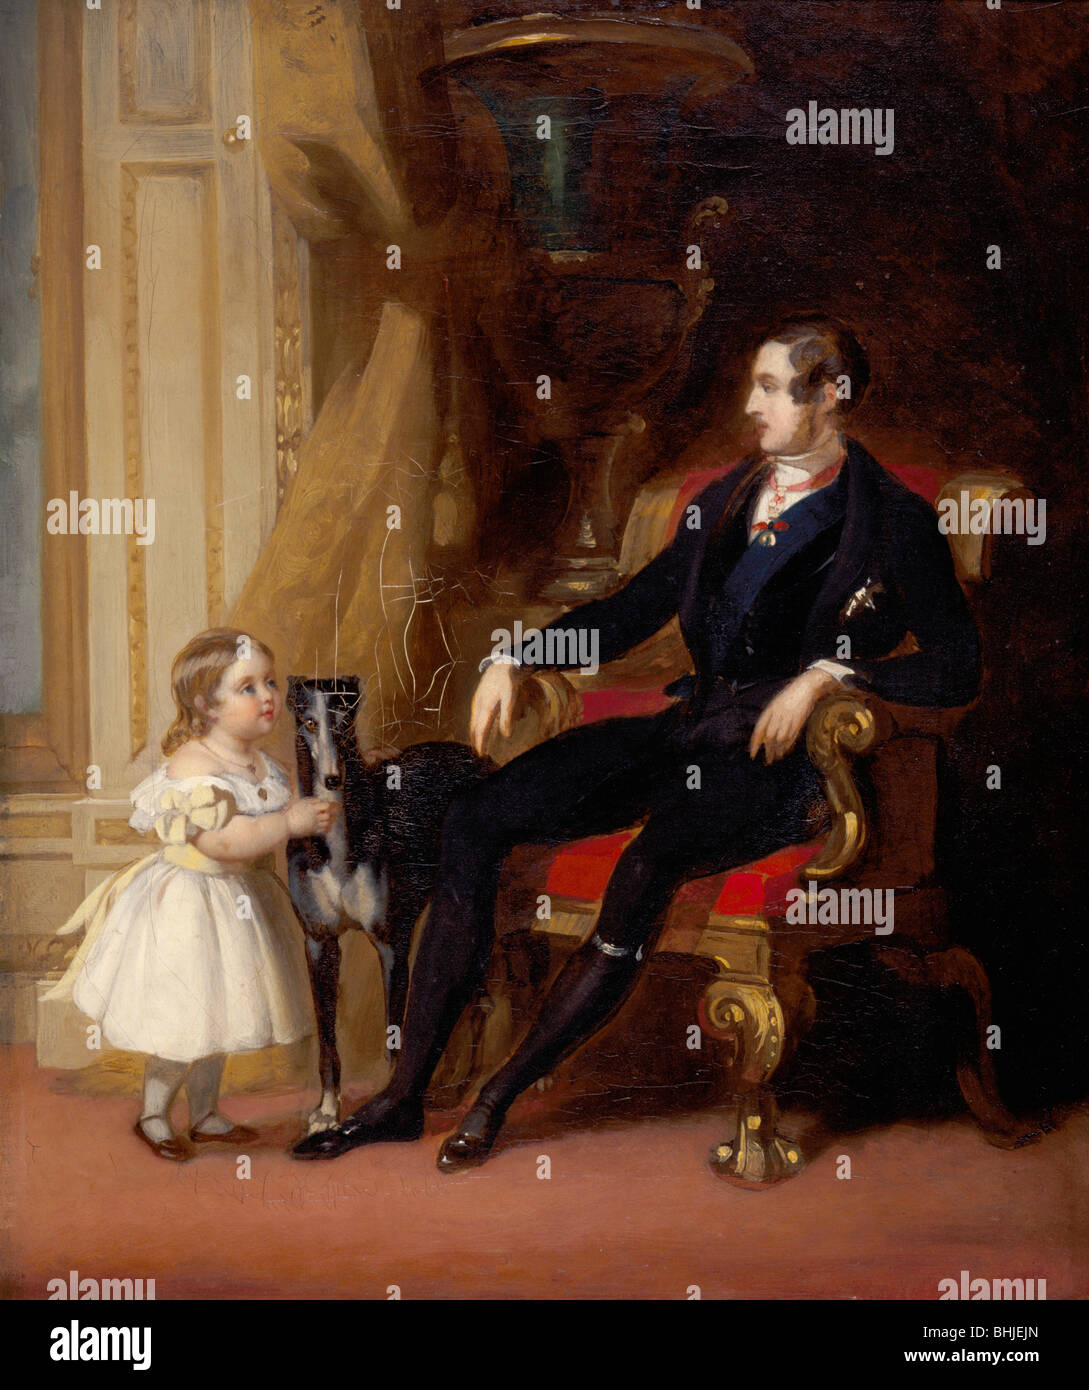 Albert Prince Consort with Princess Victoria and Eos, c1843. Artist: G Lucas - Stock Image